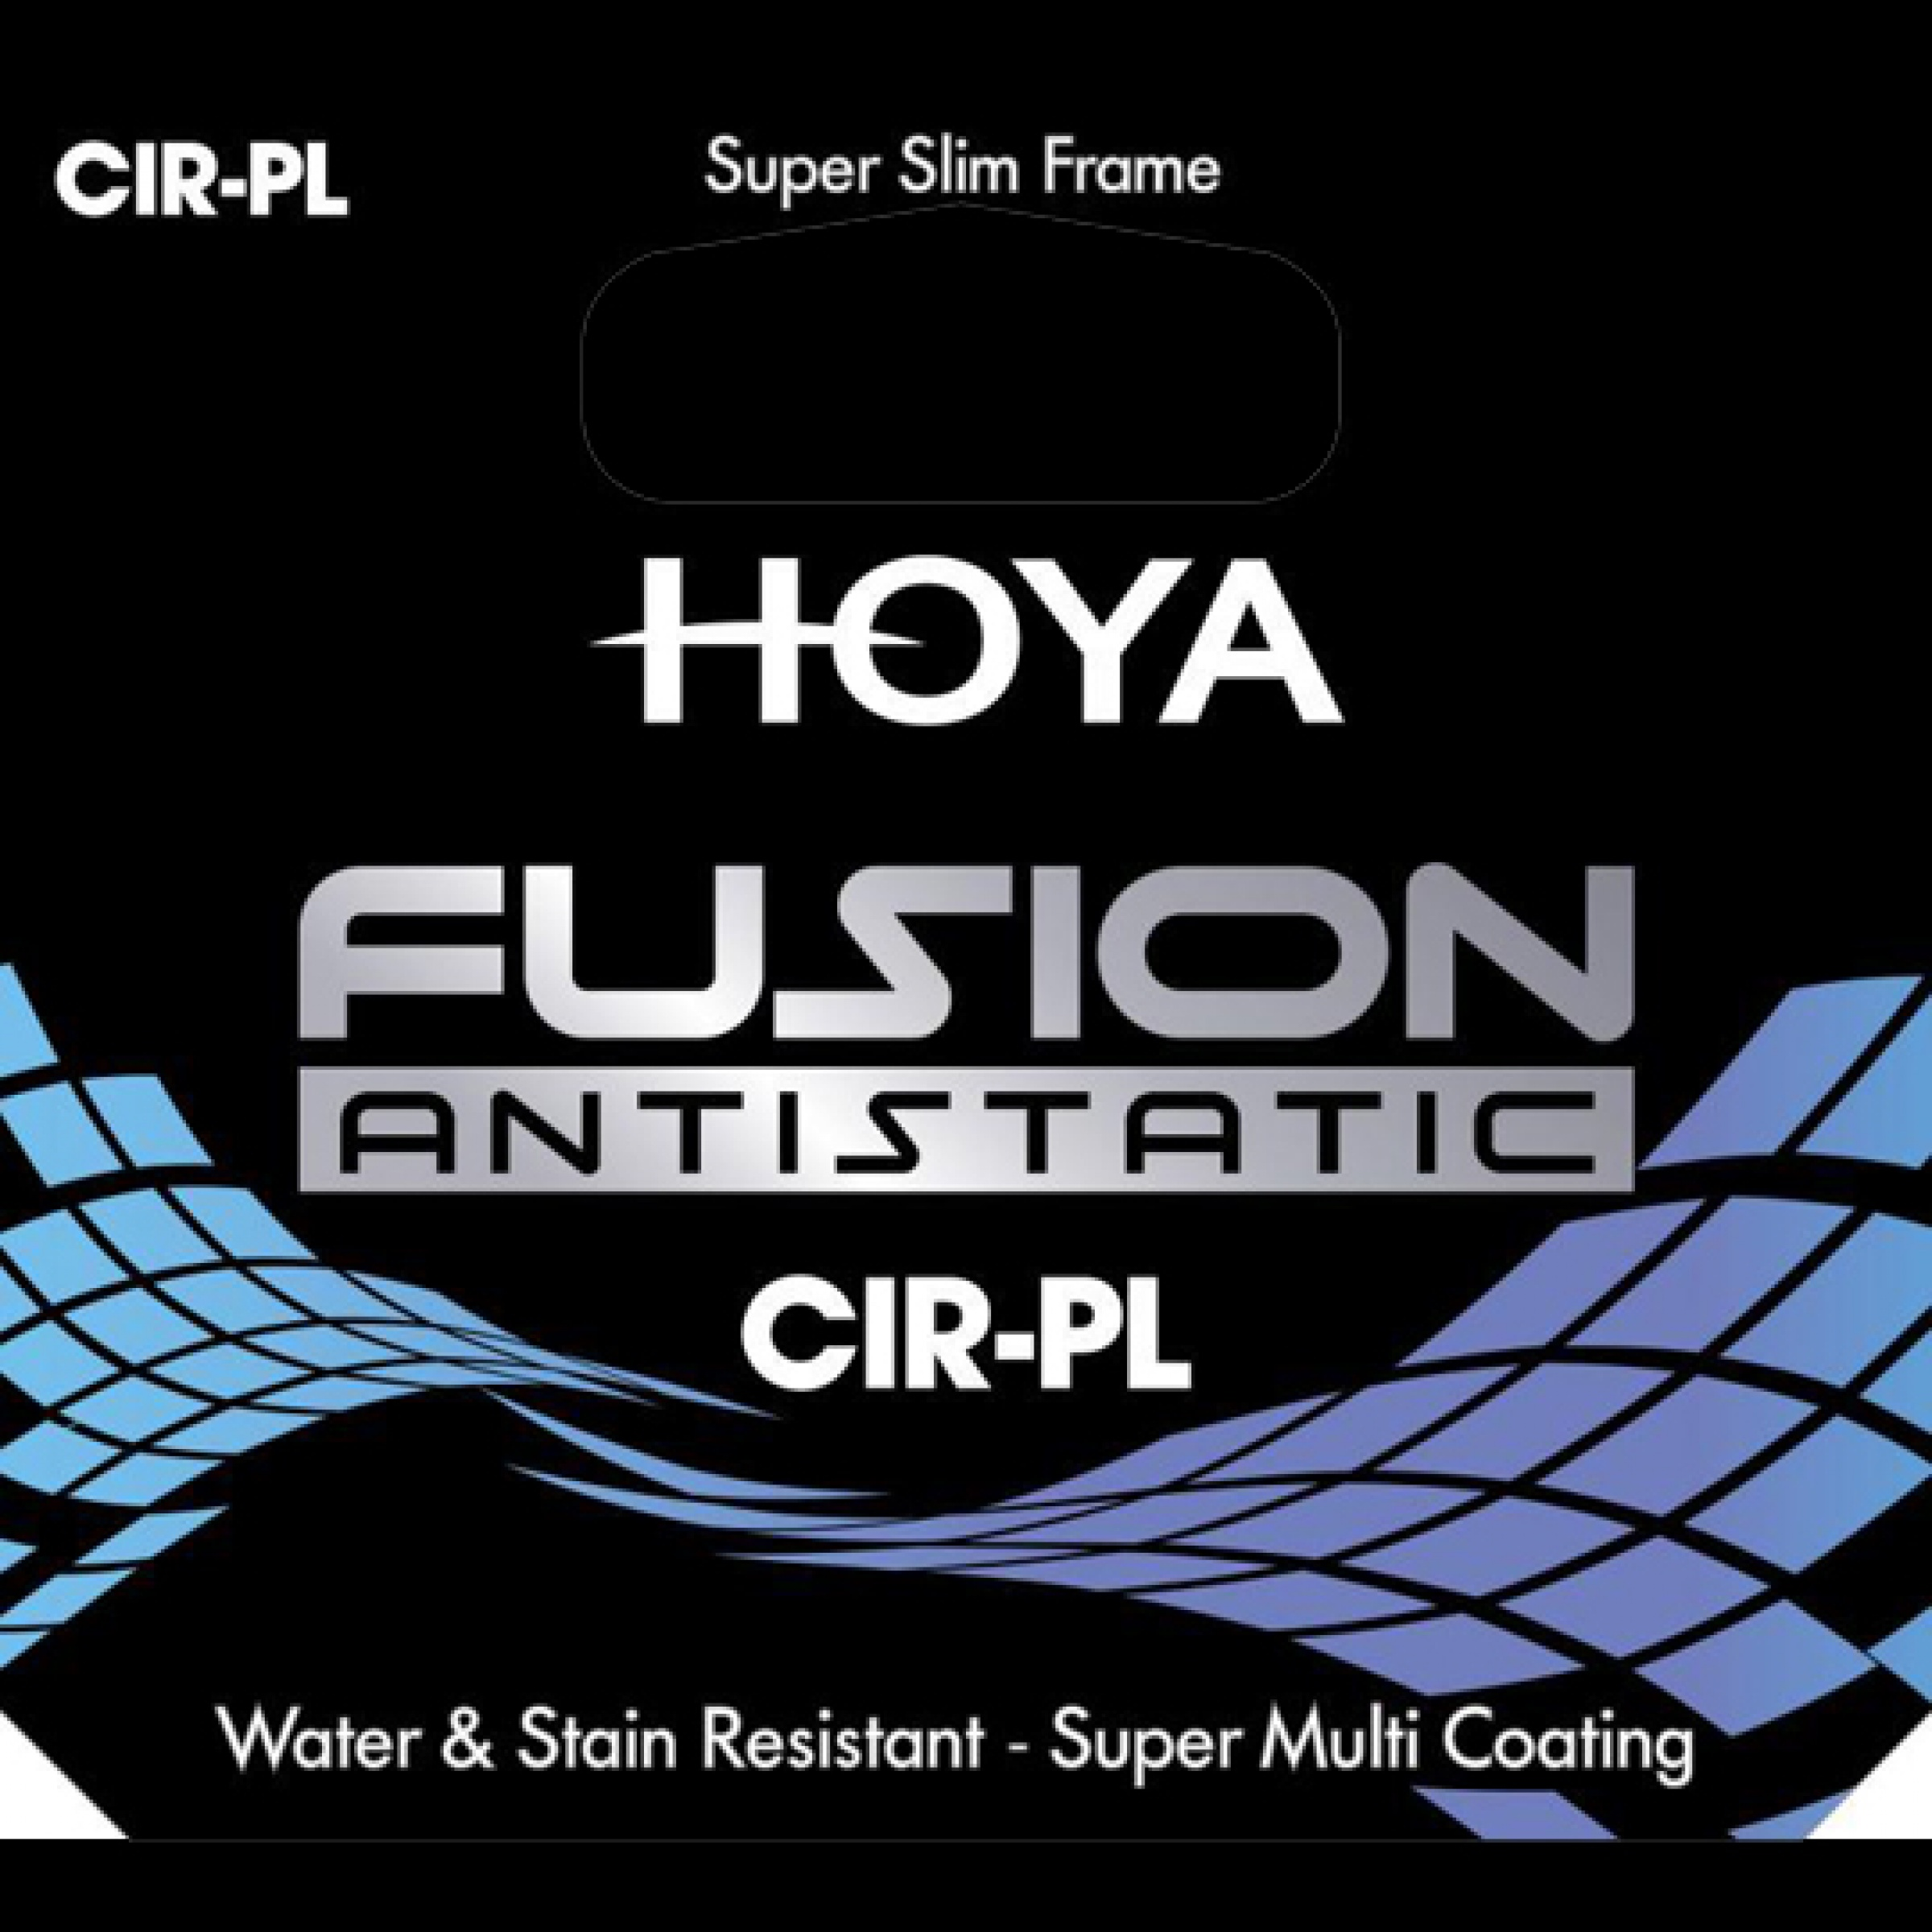 Hoya-62mm-CircPol-Fusion-Antistatic